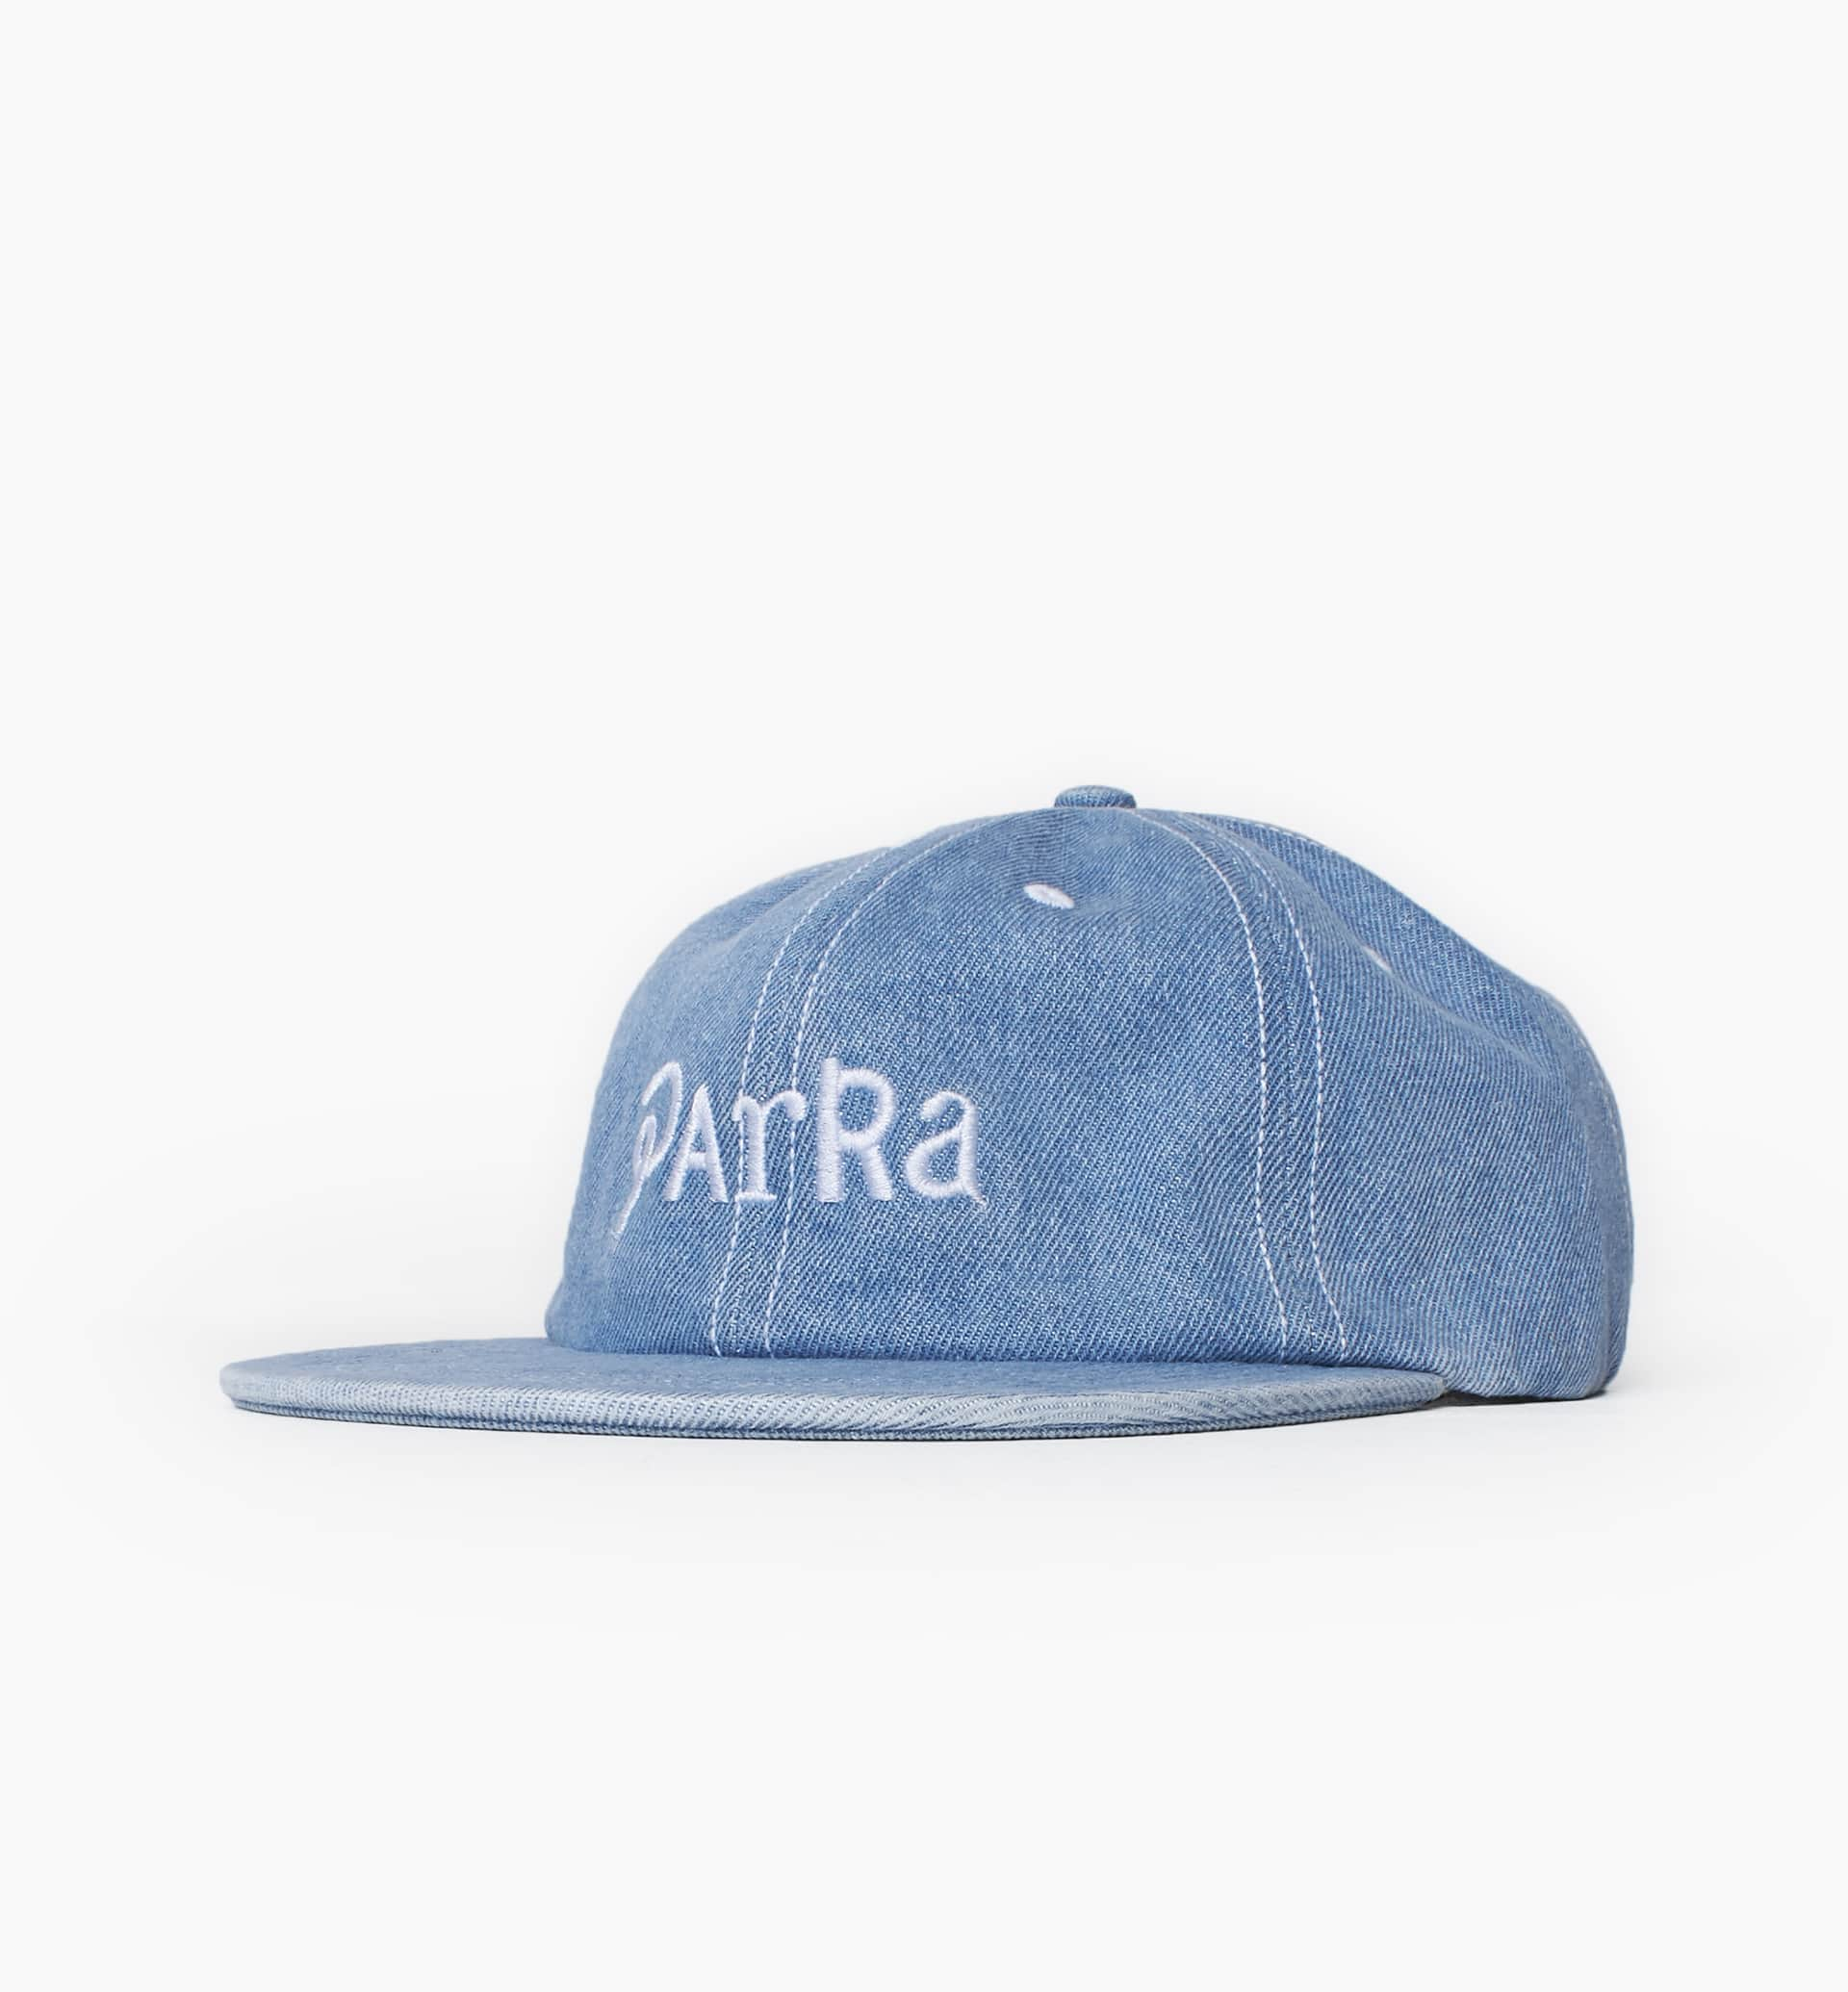 Parra - script mix logo 6 panel hat